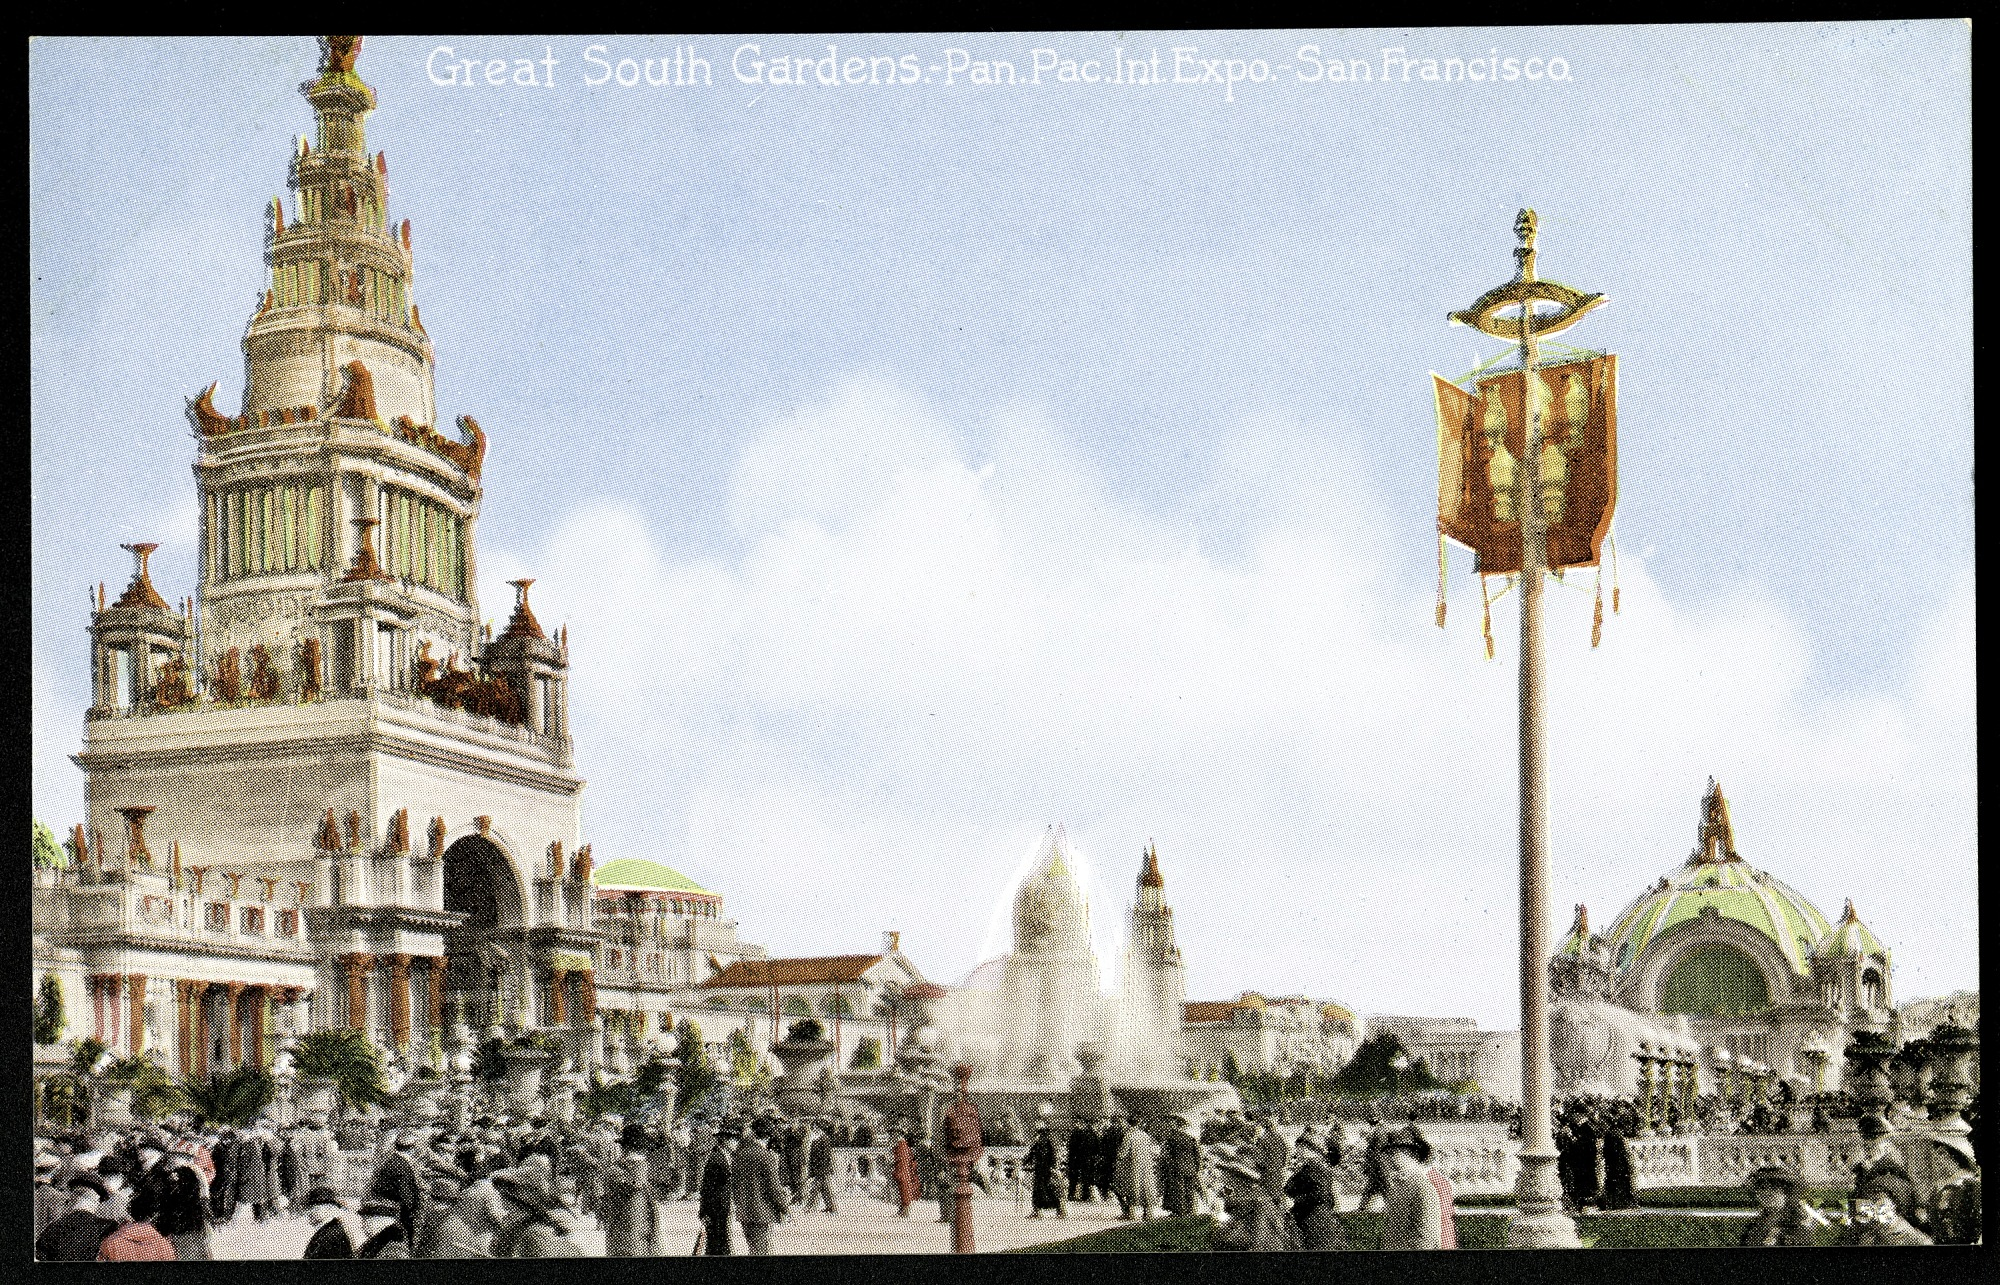 Great South Gardens Postcard from the Panama-Pacific Exposition